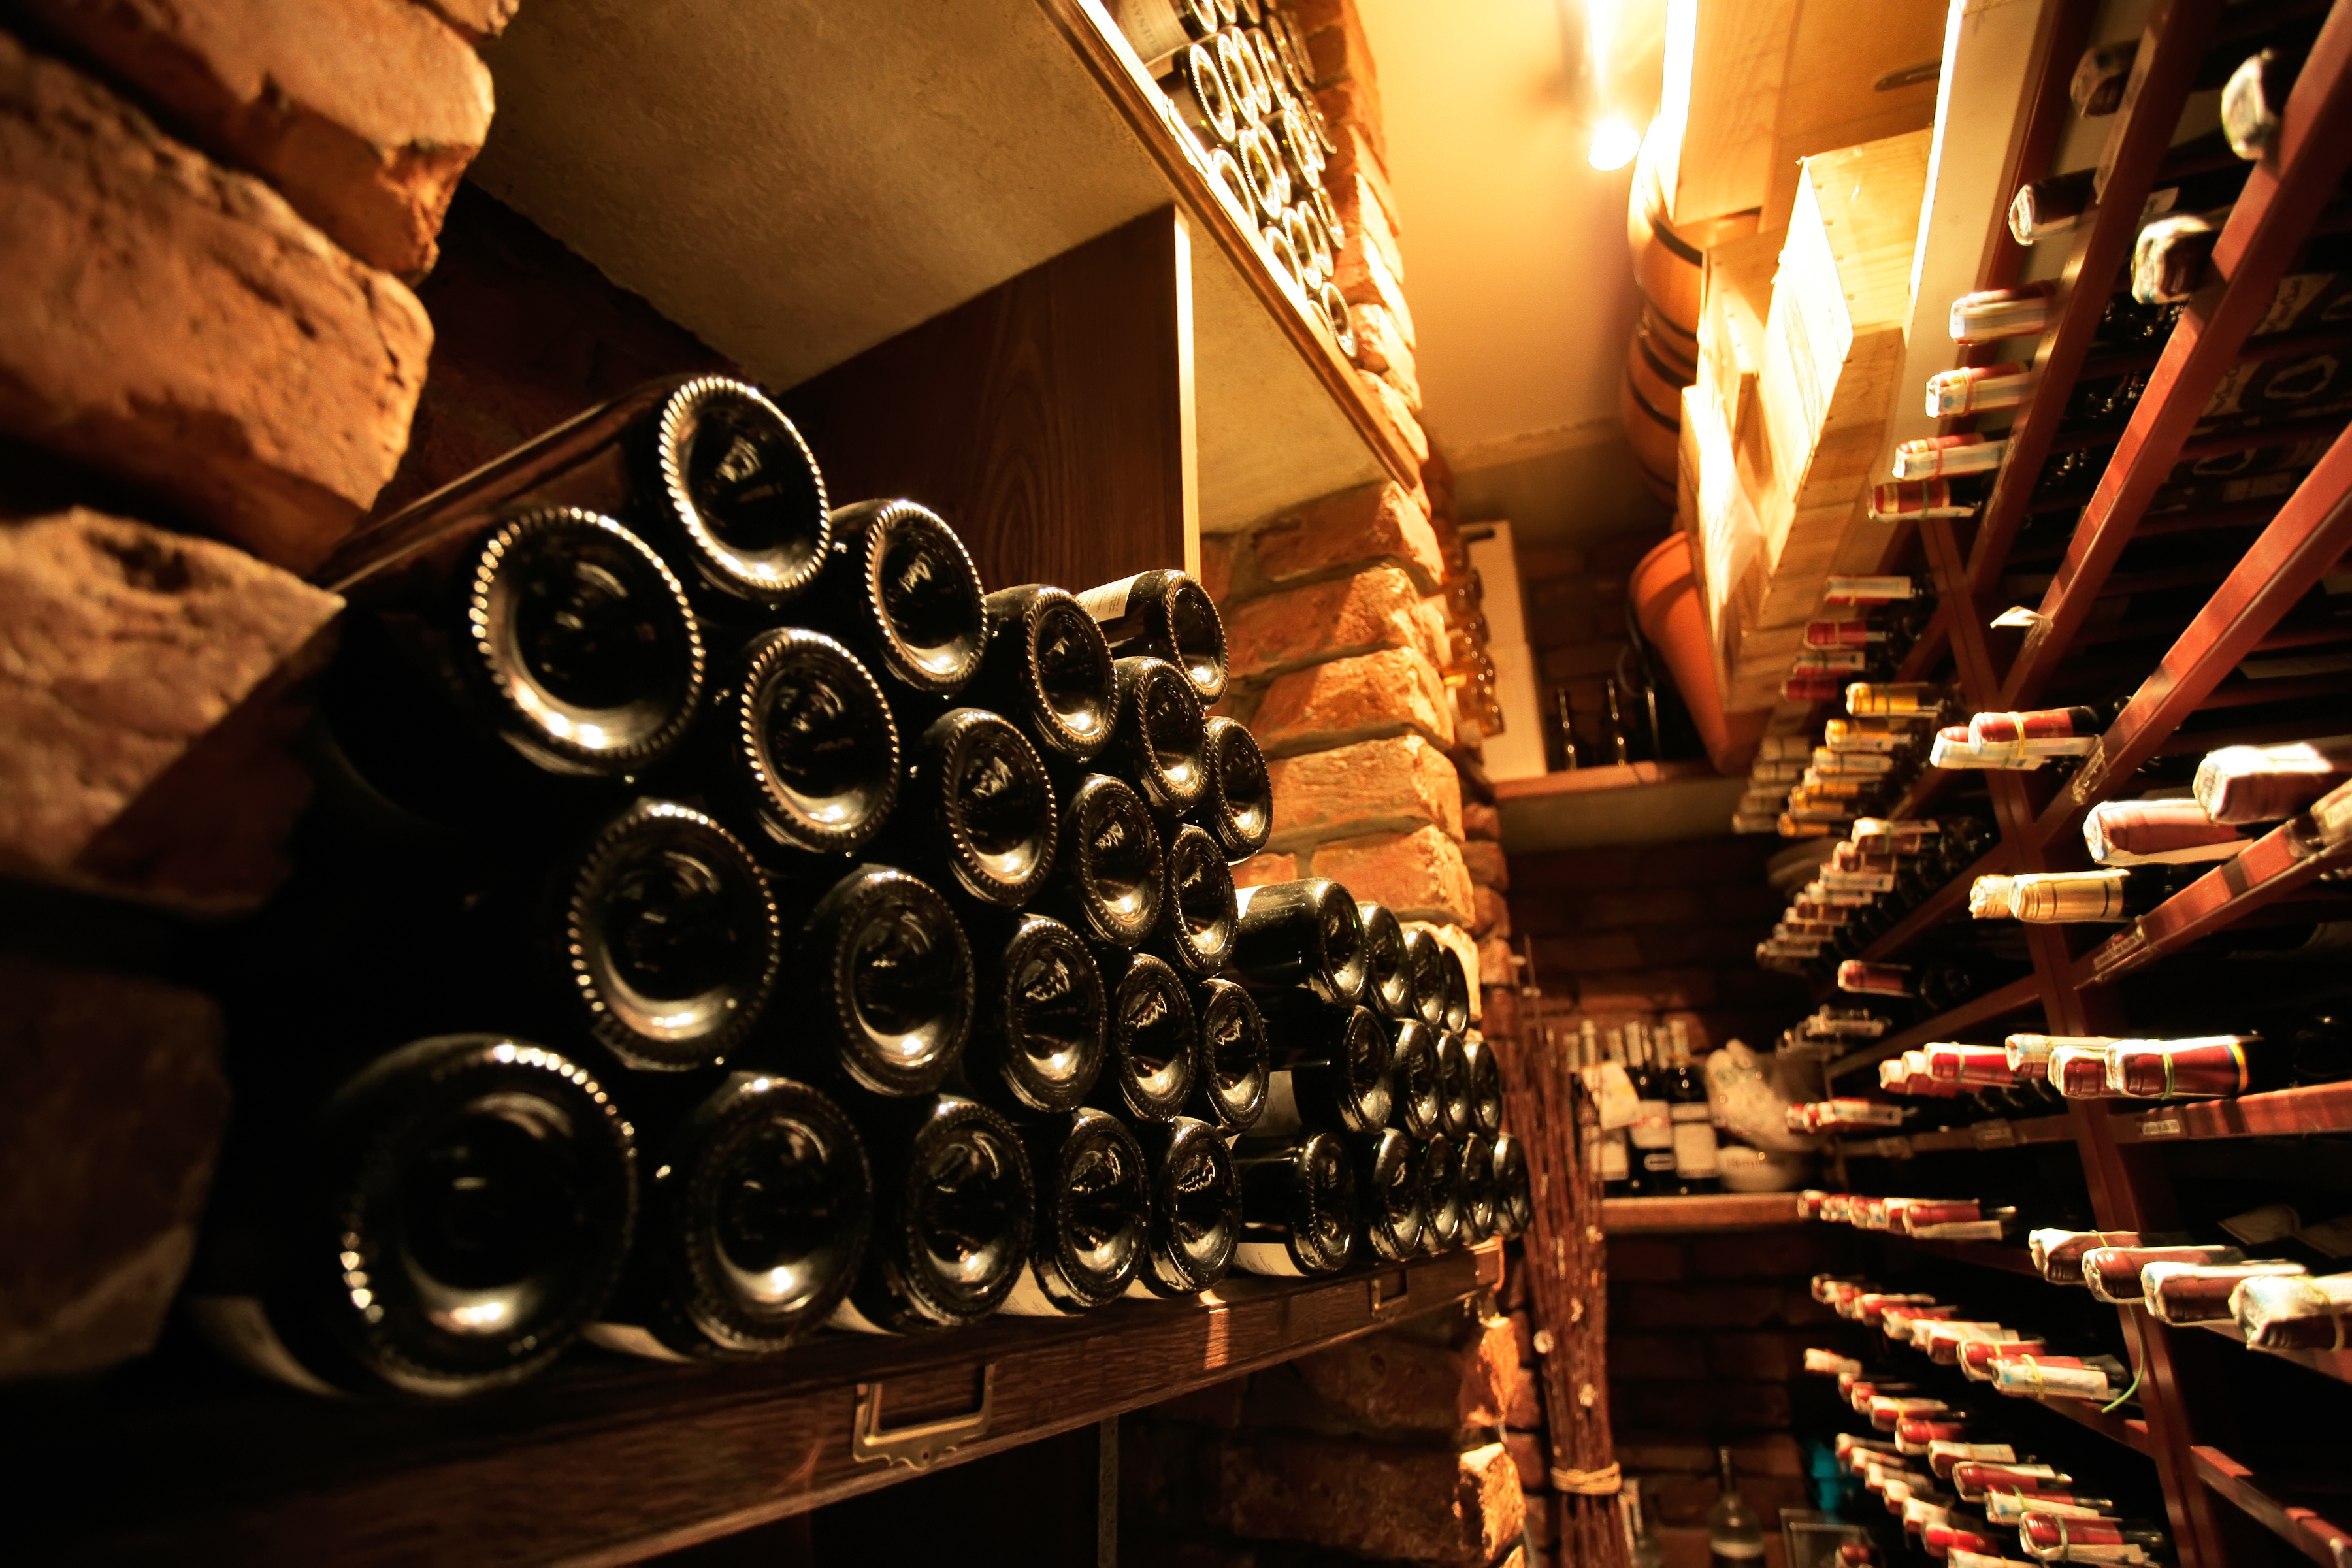 Bottles of red wine in wine cellar 93338578 - Fakes still a problem in China